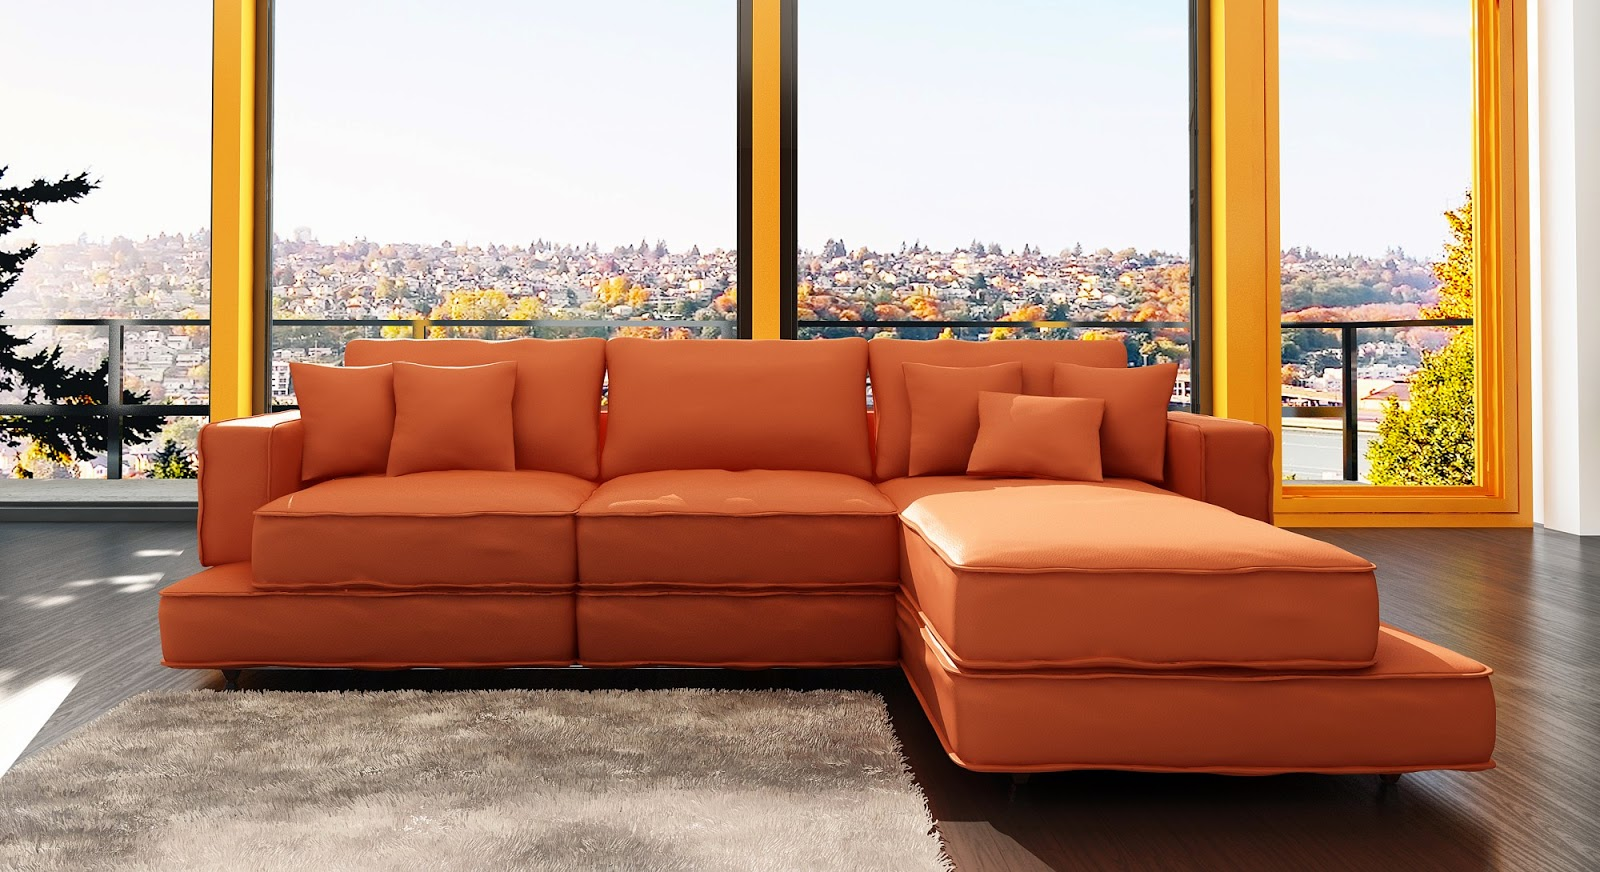 Living Room Ideas Orange Sofa orange sofa | modern home design